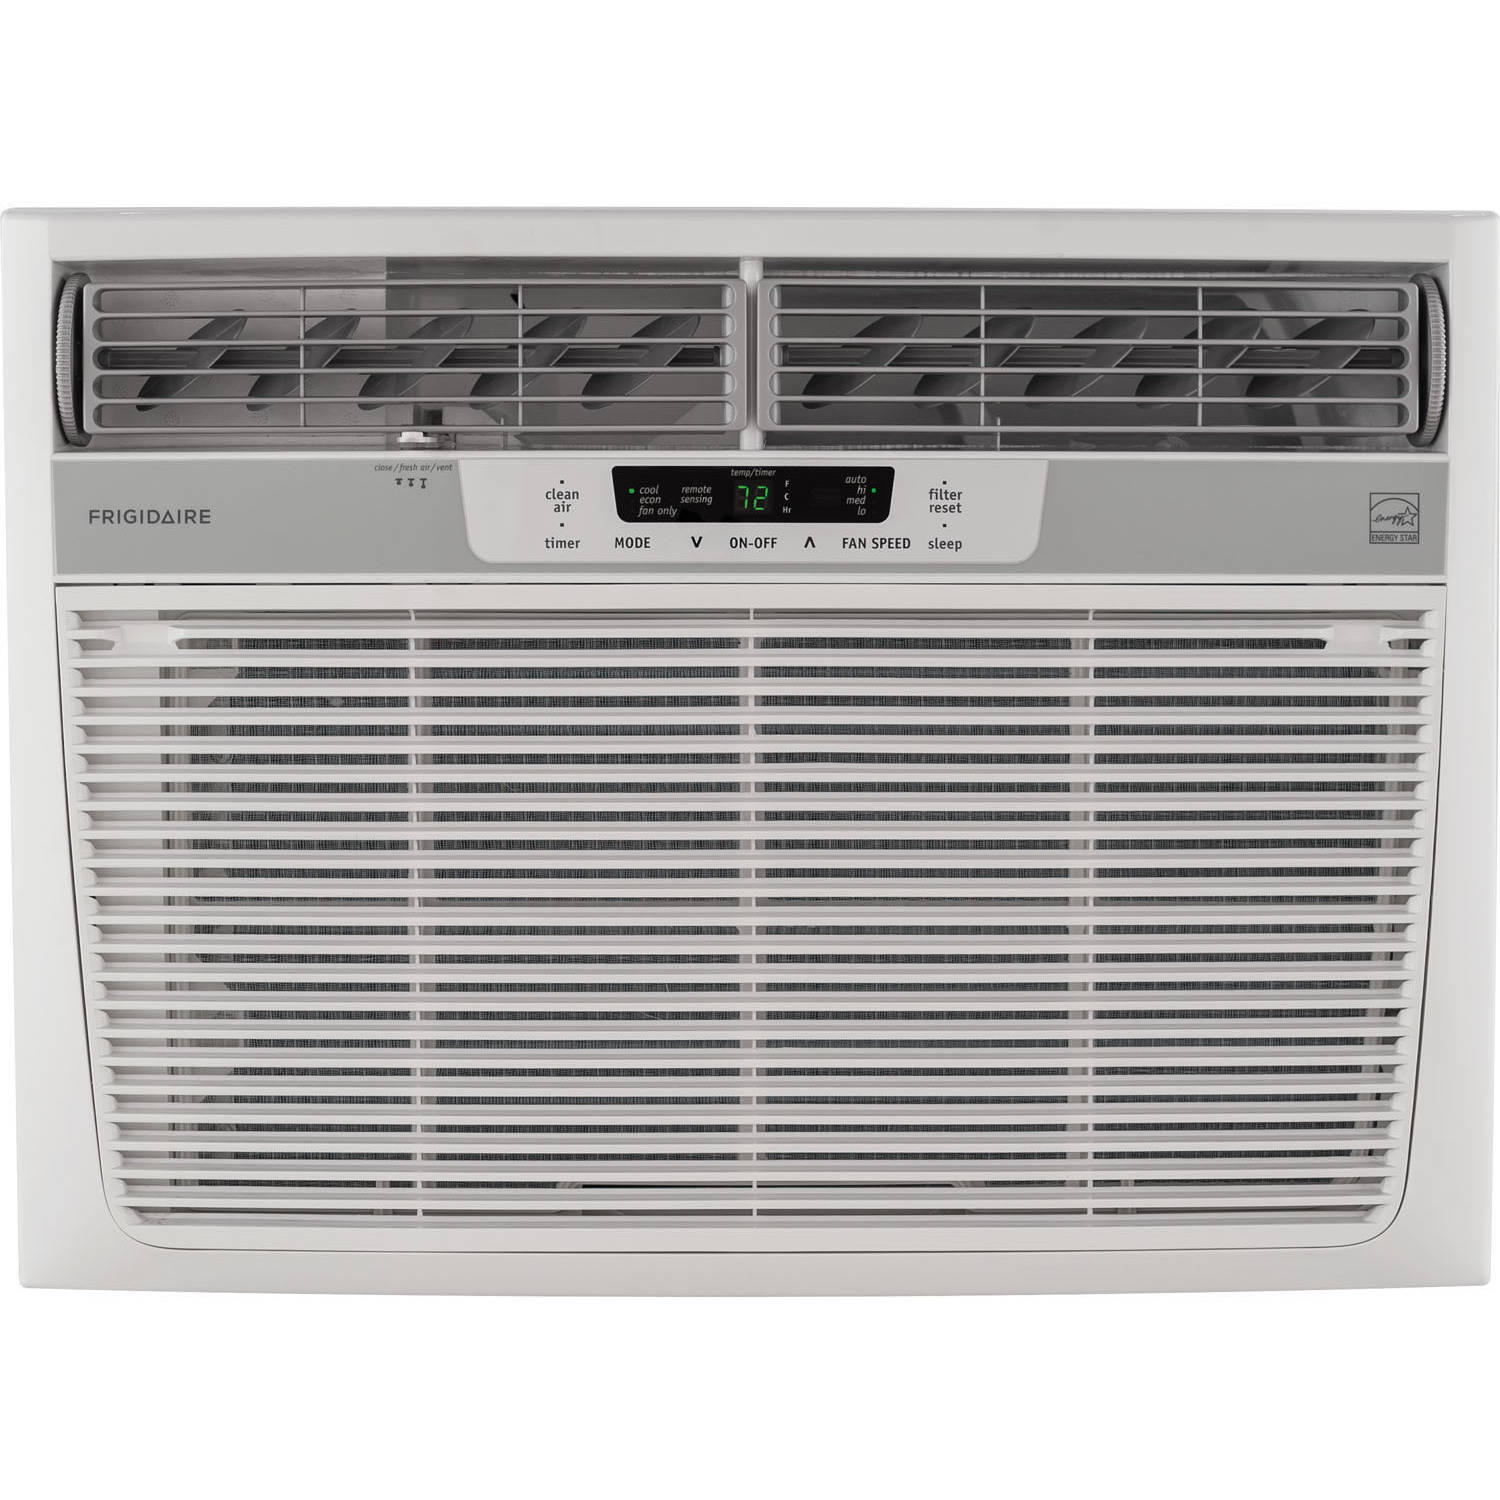 Frigidaire FFRE2533S2 25,000 BTU 230V Window-Mounted Heavy-Duty Air Conditioner with Temperature Sensing Remote Control